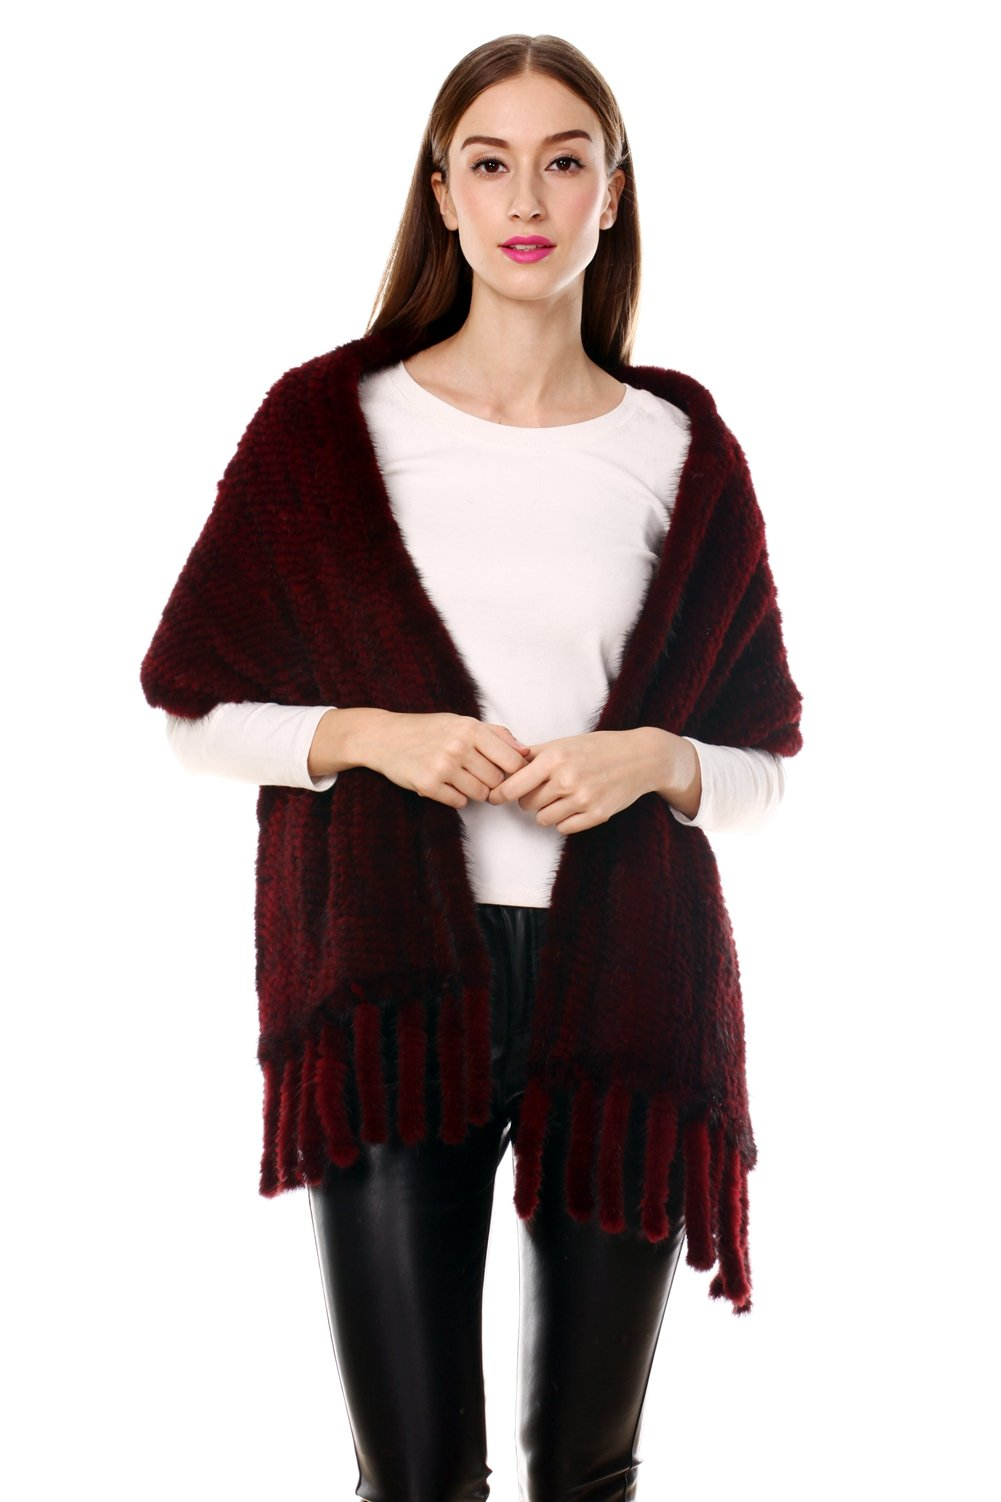 Ferand Lightweight Long Knitted Real Mink Fur Shawl with Tassels and Pockets for Women, Burgundy